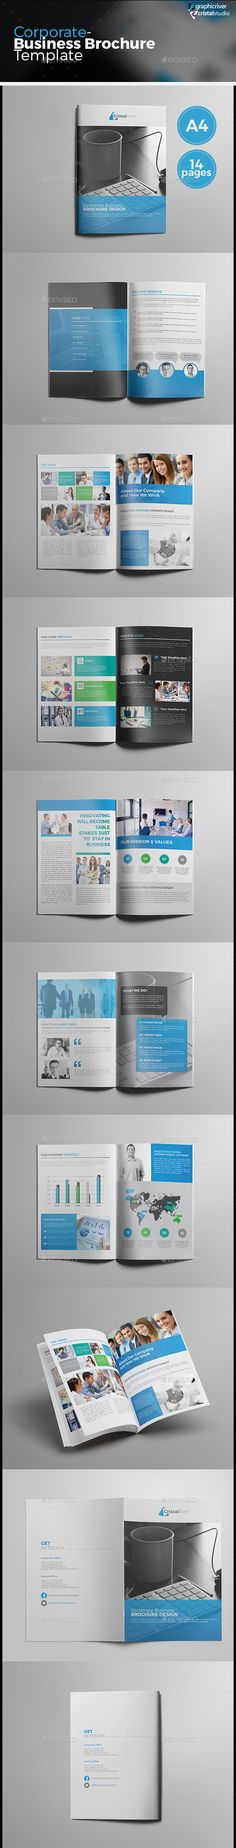 Medical Billing Services Tri Fold Brochure Template Impressos - medical brochure template